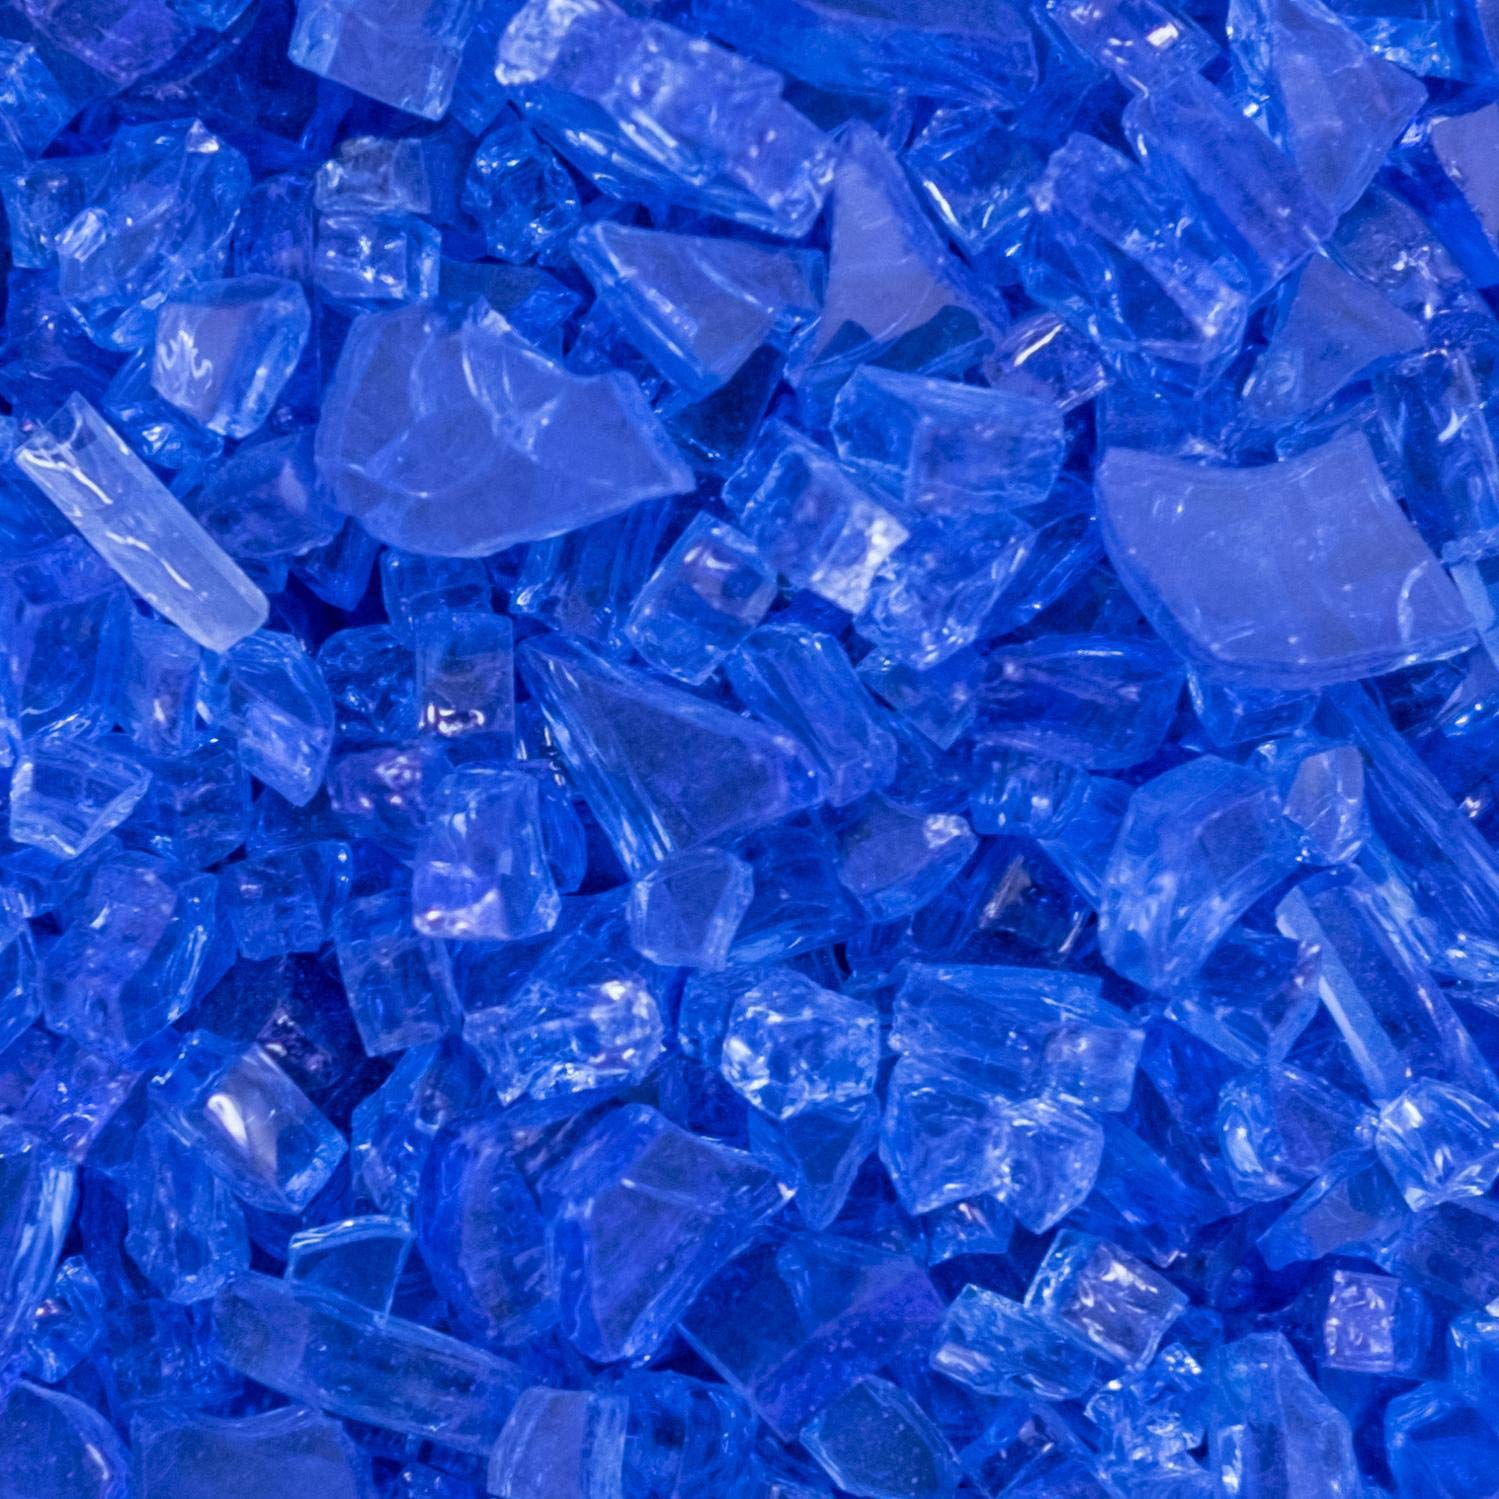 Lakeview Outdoor Designs 1/4-Inch Blue-Jay Fire Glass - 1 Pound